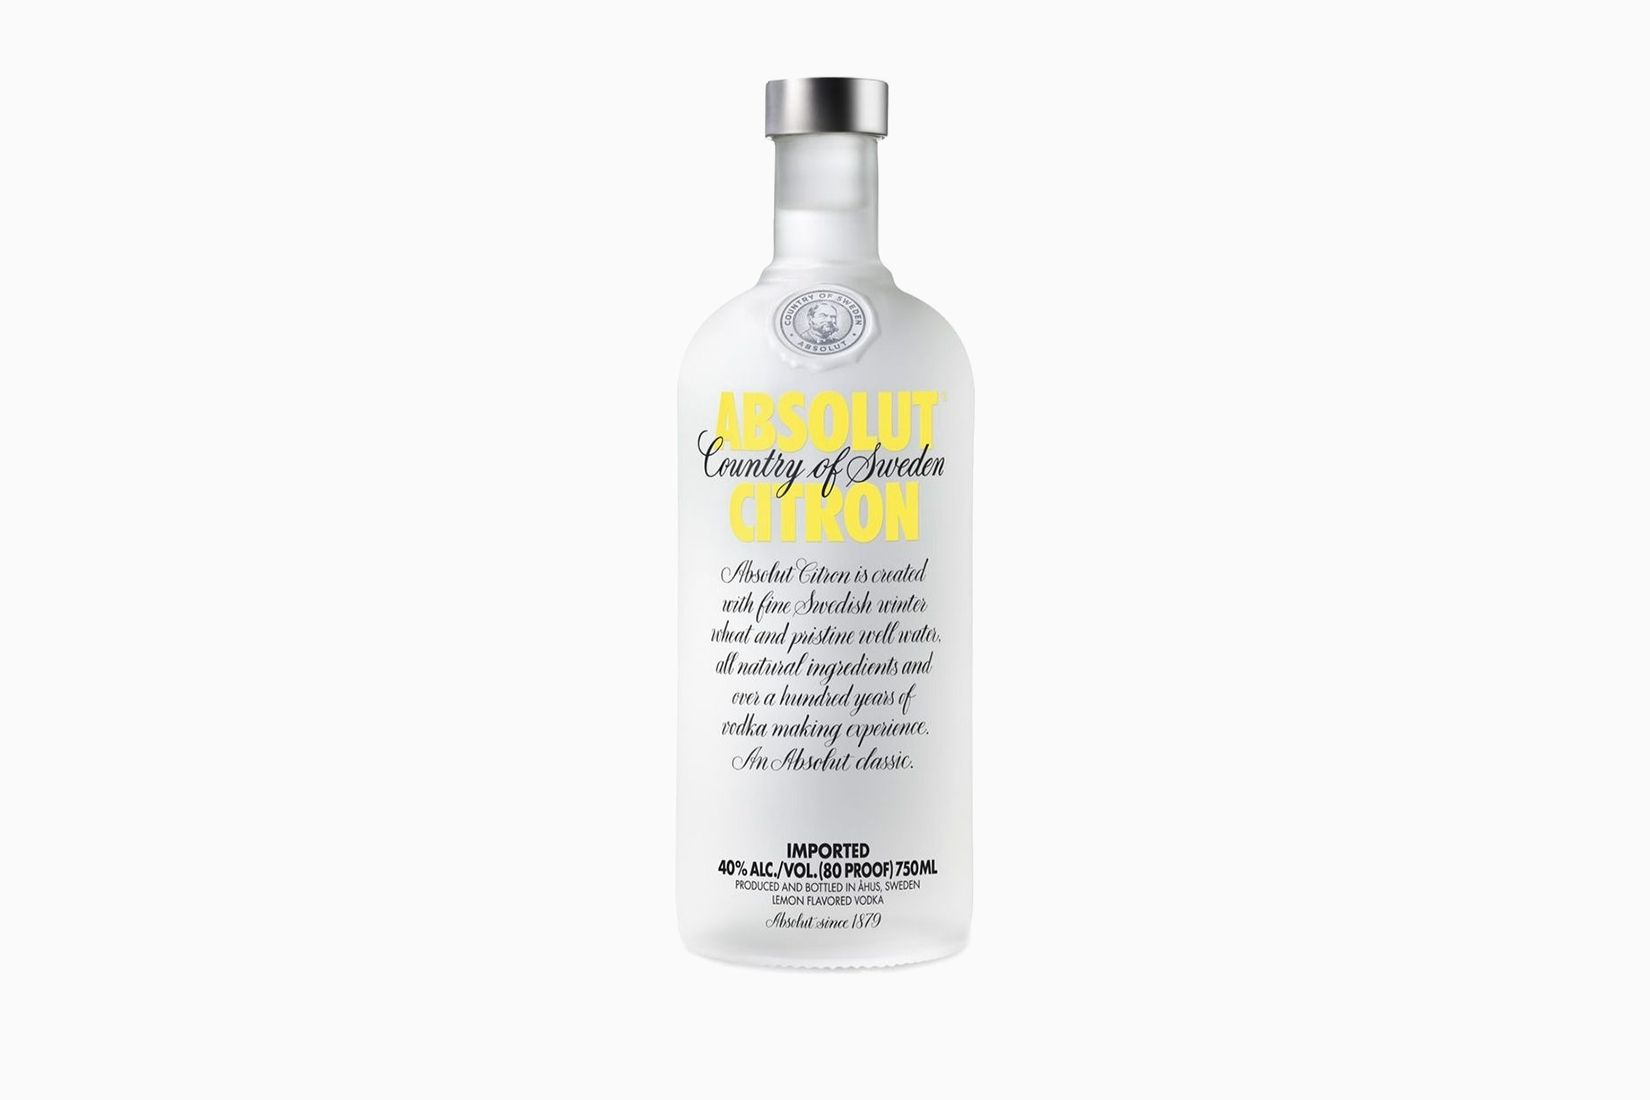 Absolut Vodka Citron Price Review - Luxe Digital